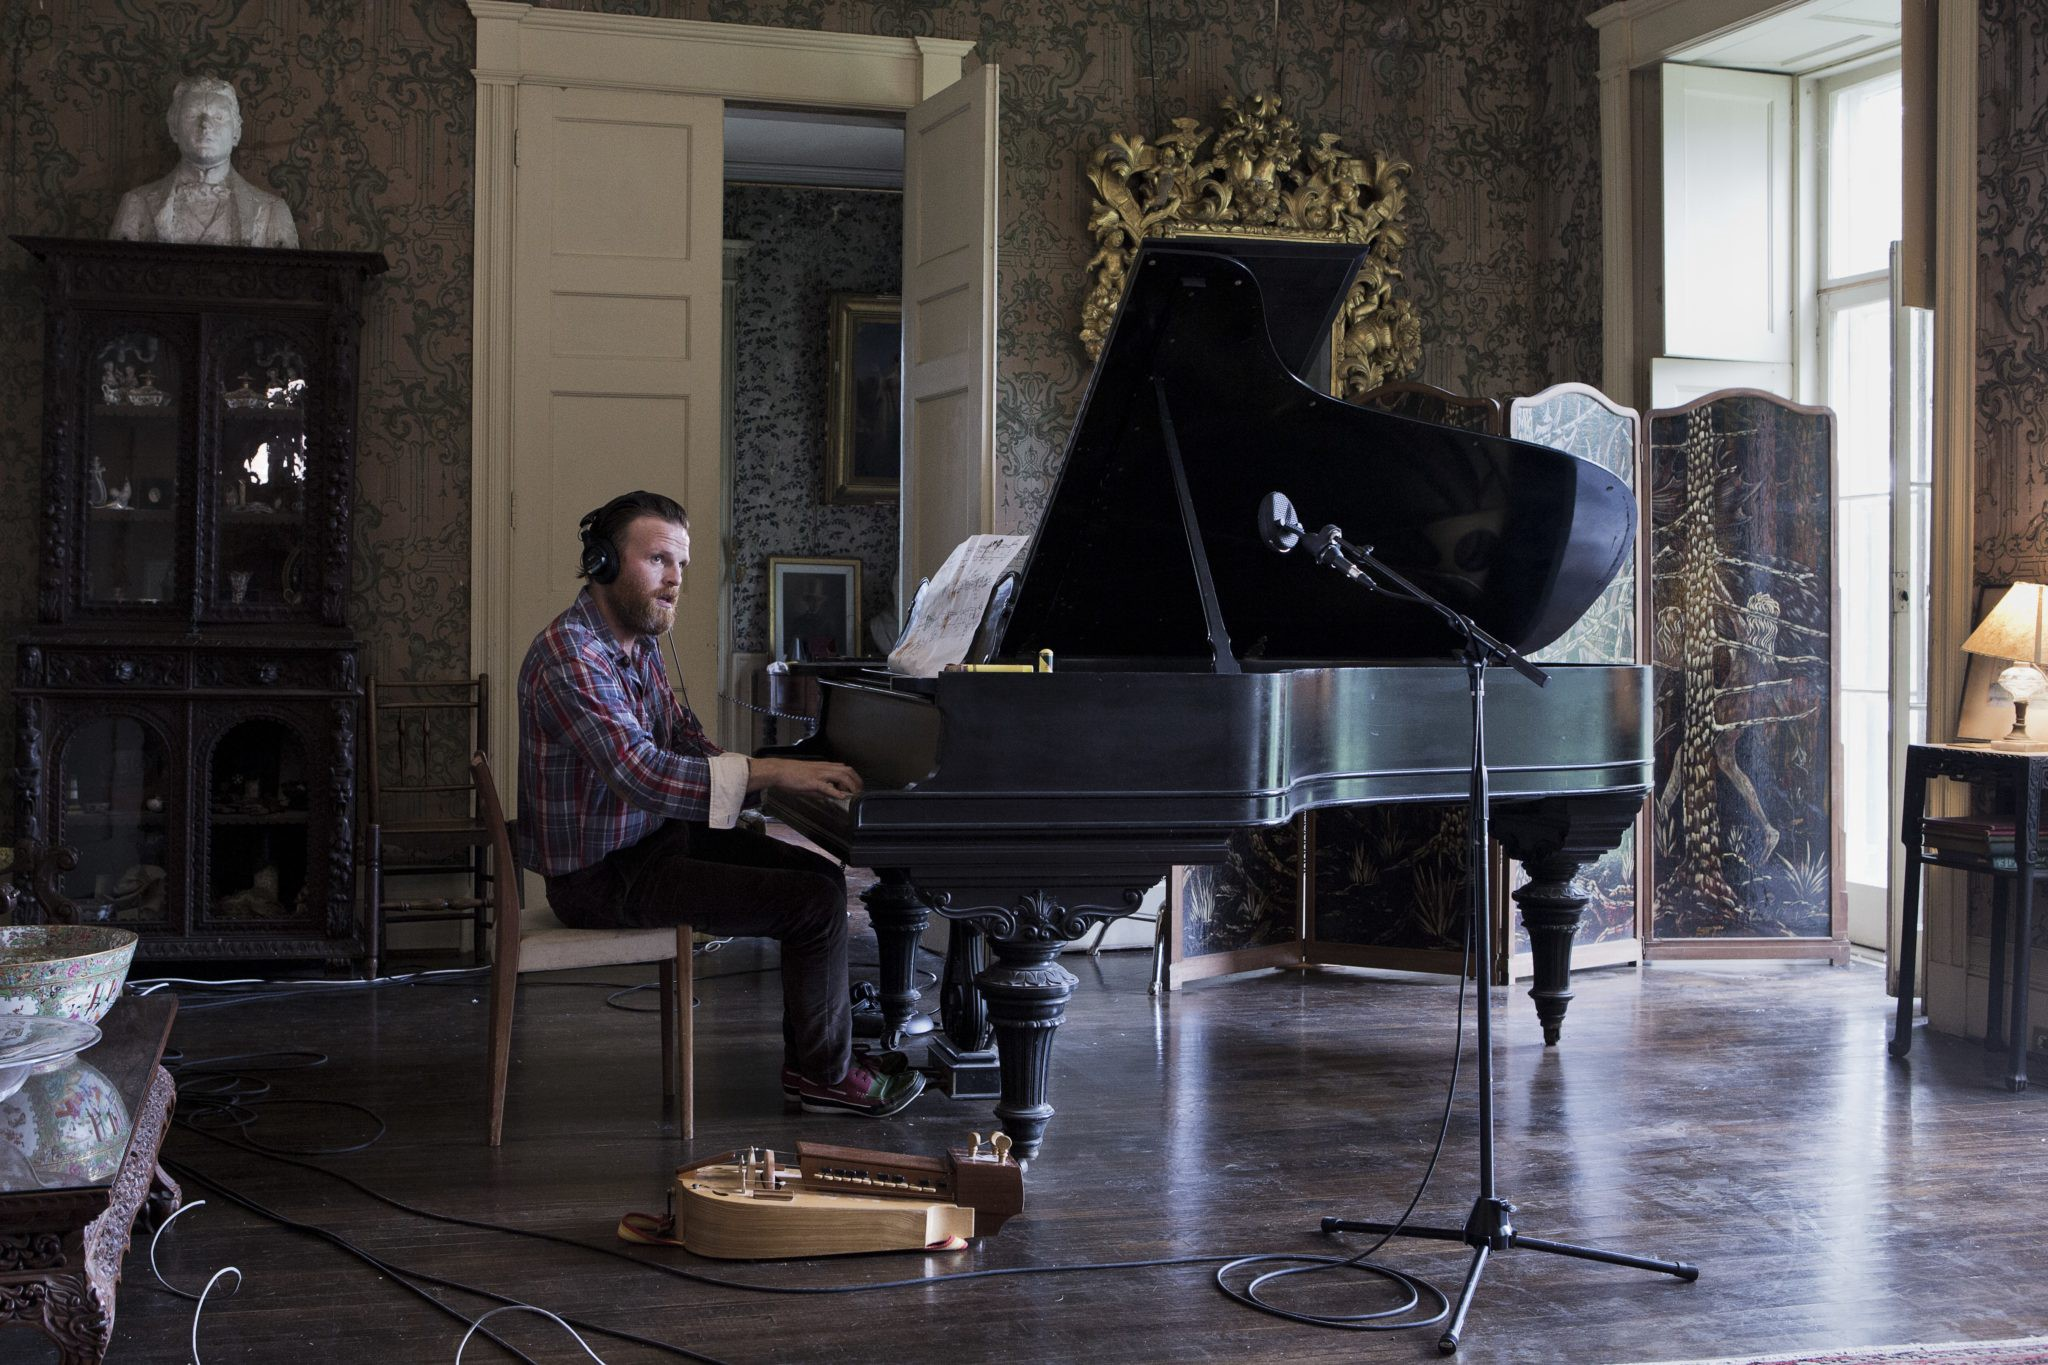 A man plays the piano in a grandiose room with an ornate mirror and a bust nearby.